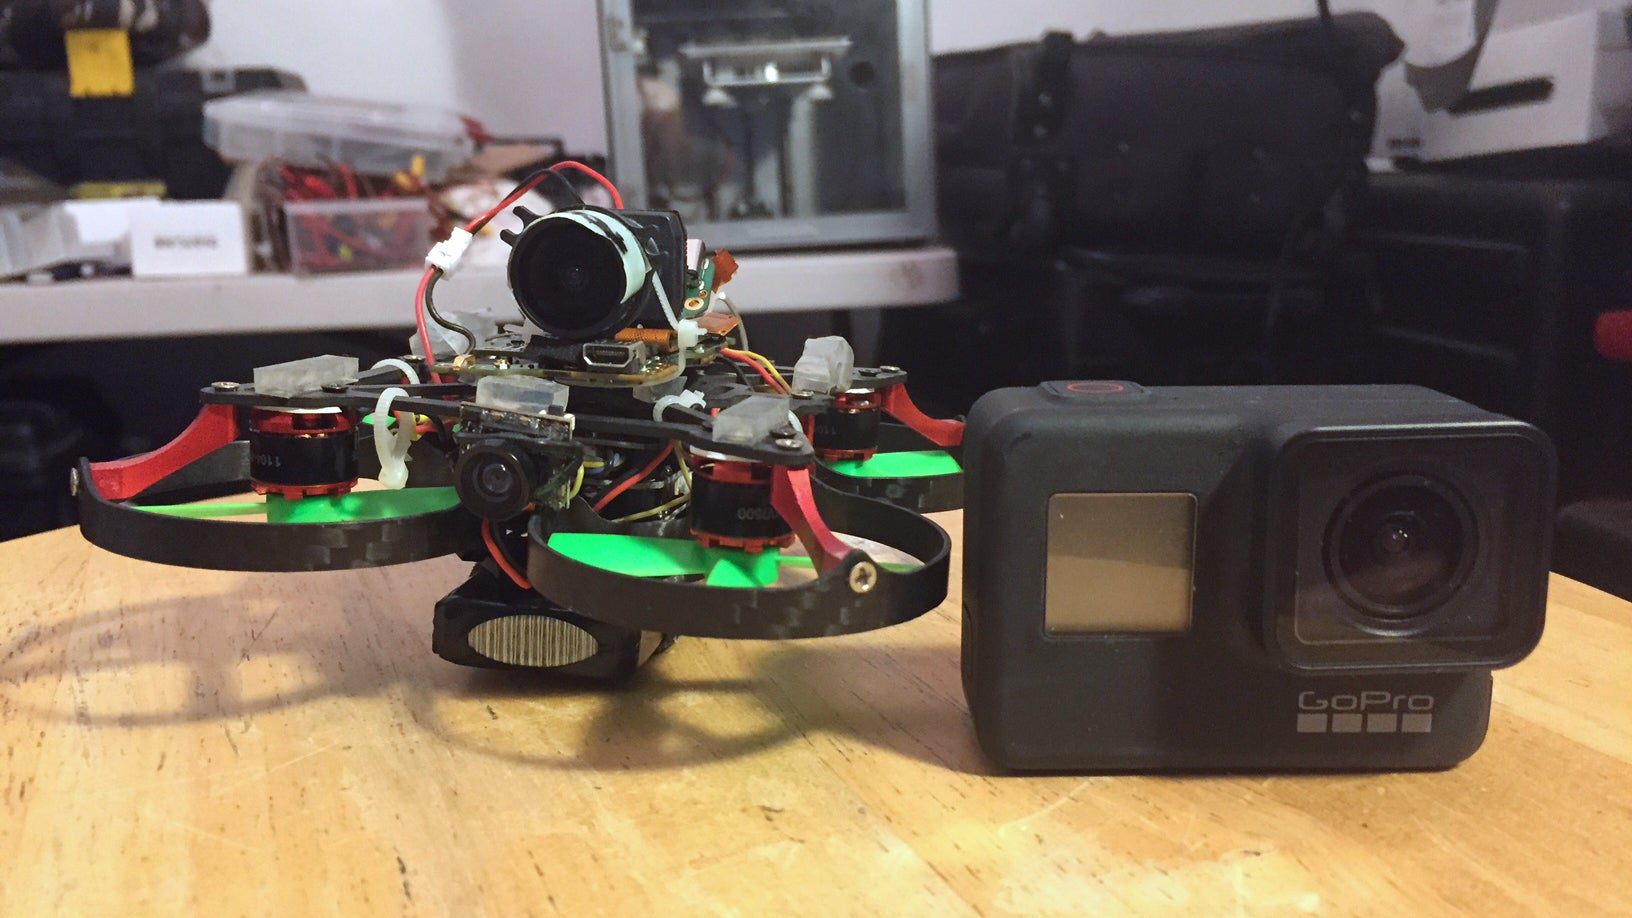 A Tiny Drone Carrying a Deconstructed GoPro Captured This